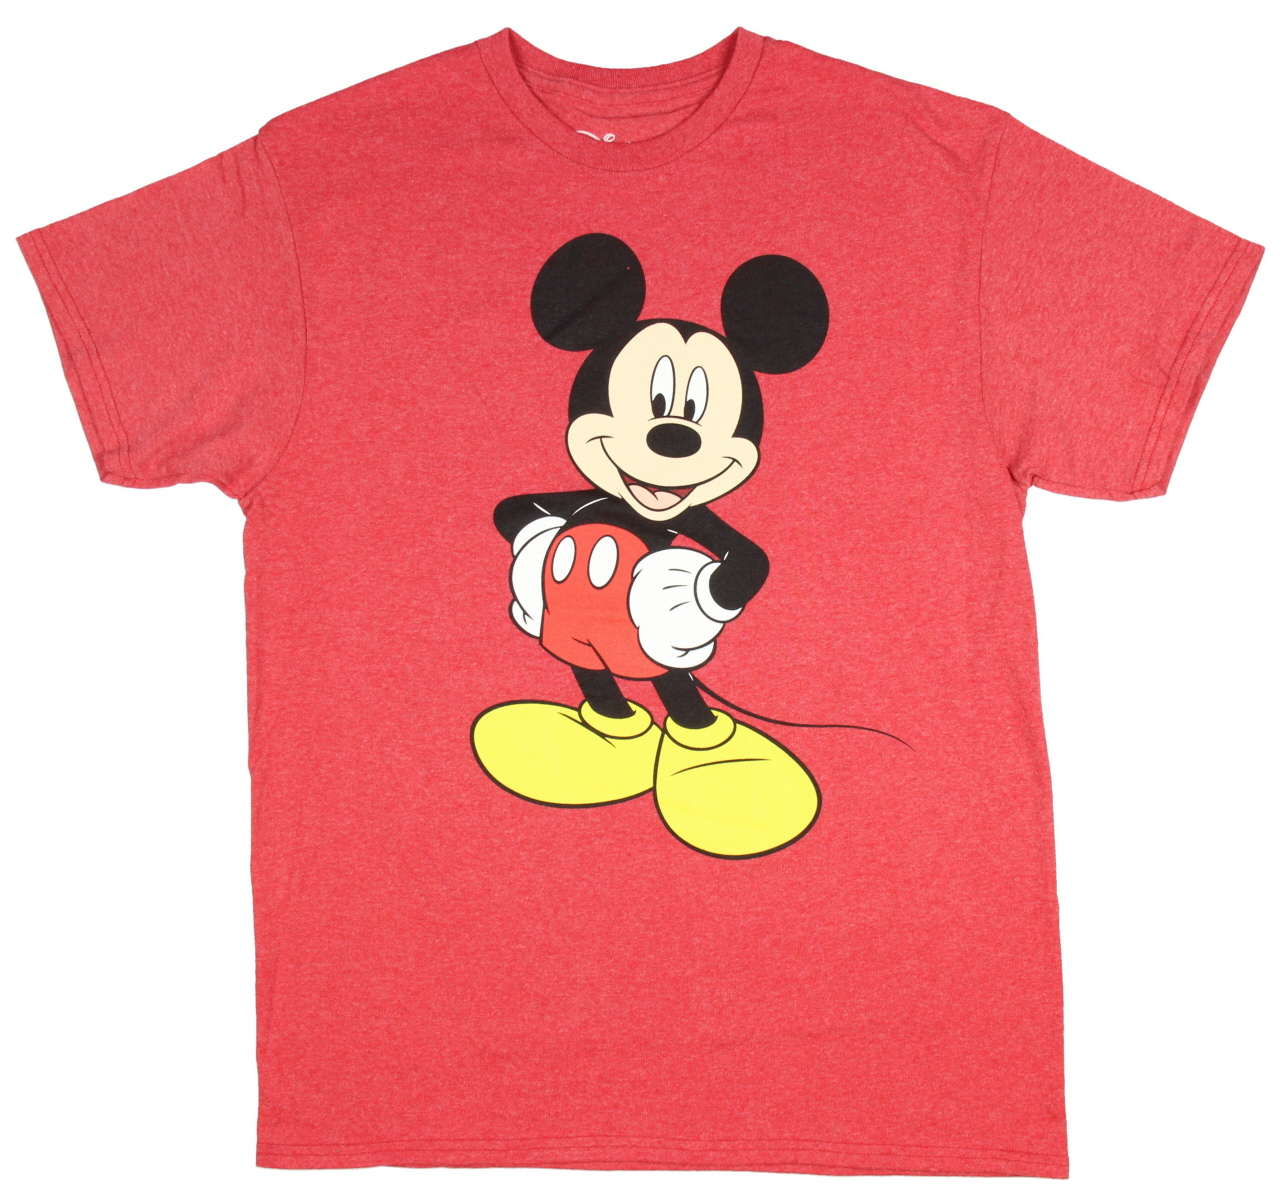 Men's Mickey Mouse Vintage Black And White Distressed Character T-Shirt - Red